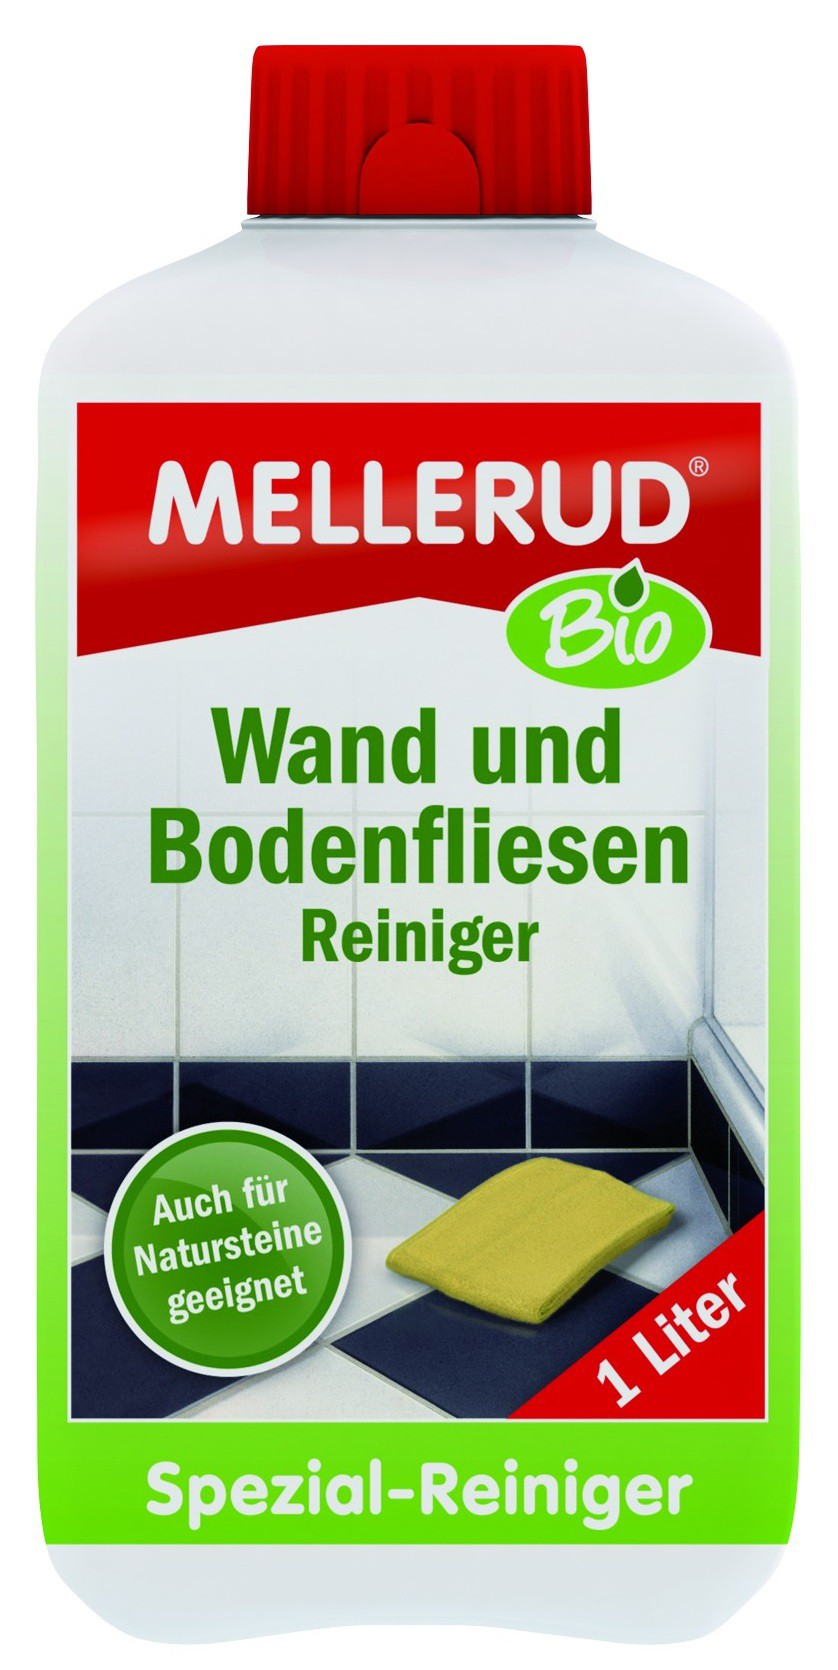 mellerud bio wand und bodenfliesen reiniger 1000 ml. Black Bedroom Furniture Sets. Home Design Ideas